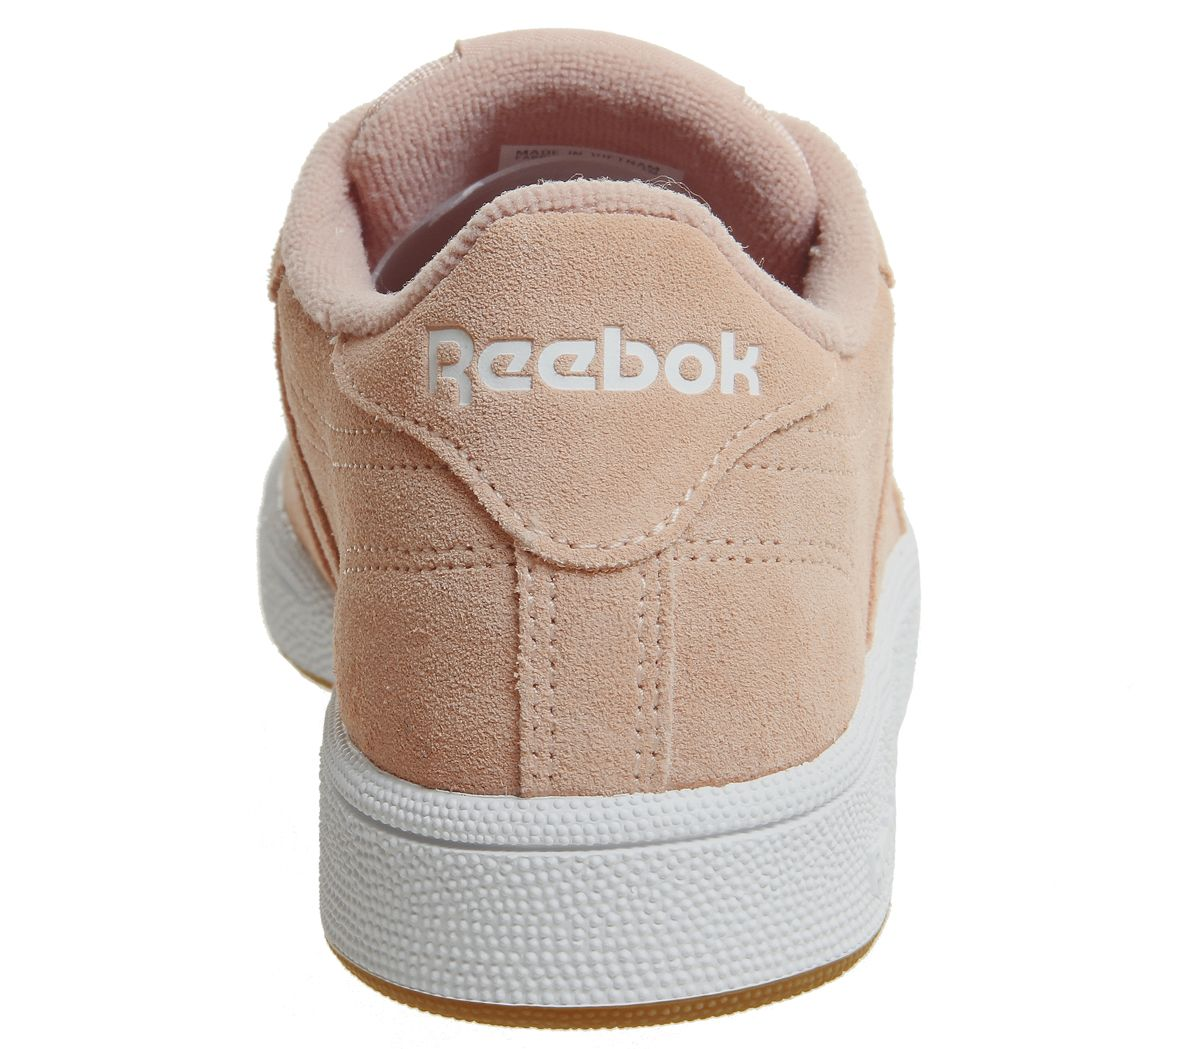 ed7761d02830 Womens Reebok Club C 85 Trainers Peach Twist White Gum Trainers ...